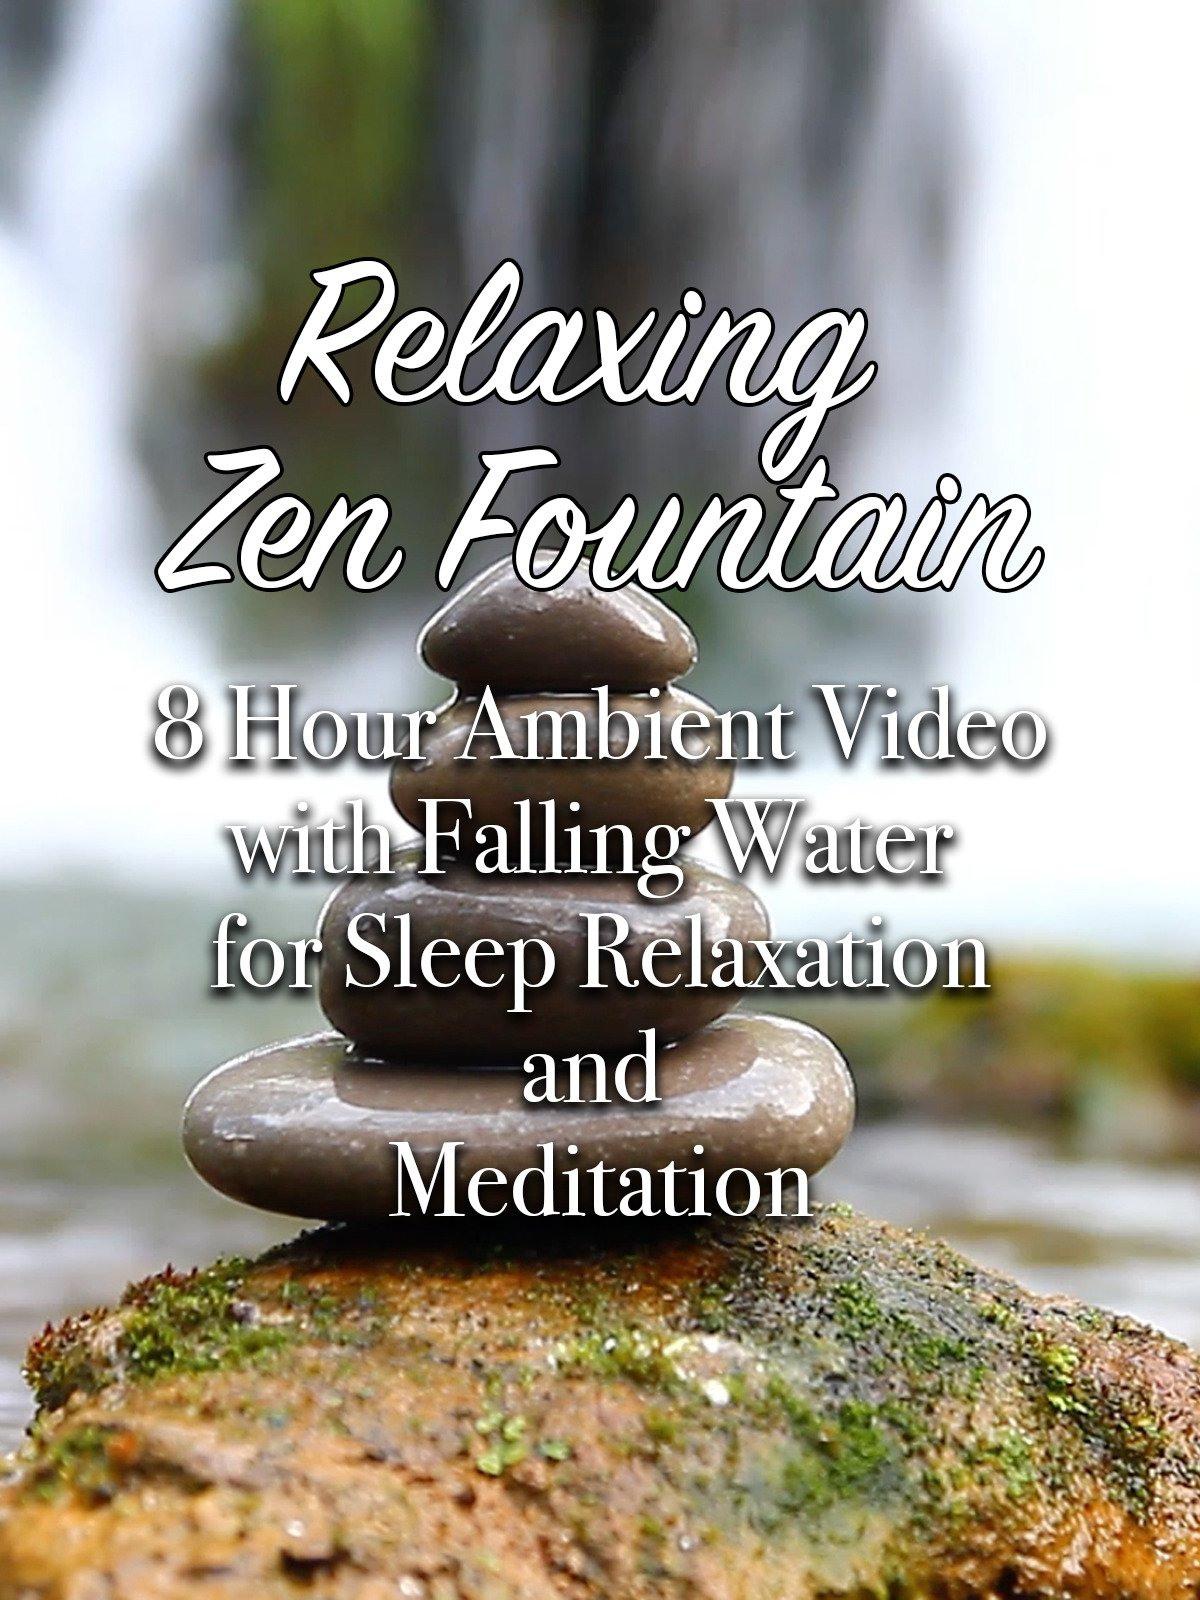 Relaxing Zen Fountain 8 Hour Ambient Video with Falling Water for Sleep Relaxation and Meditation